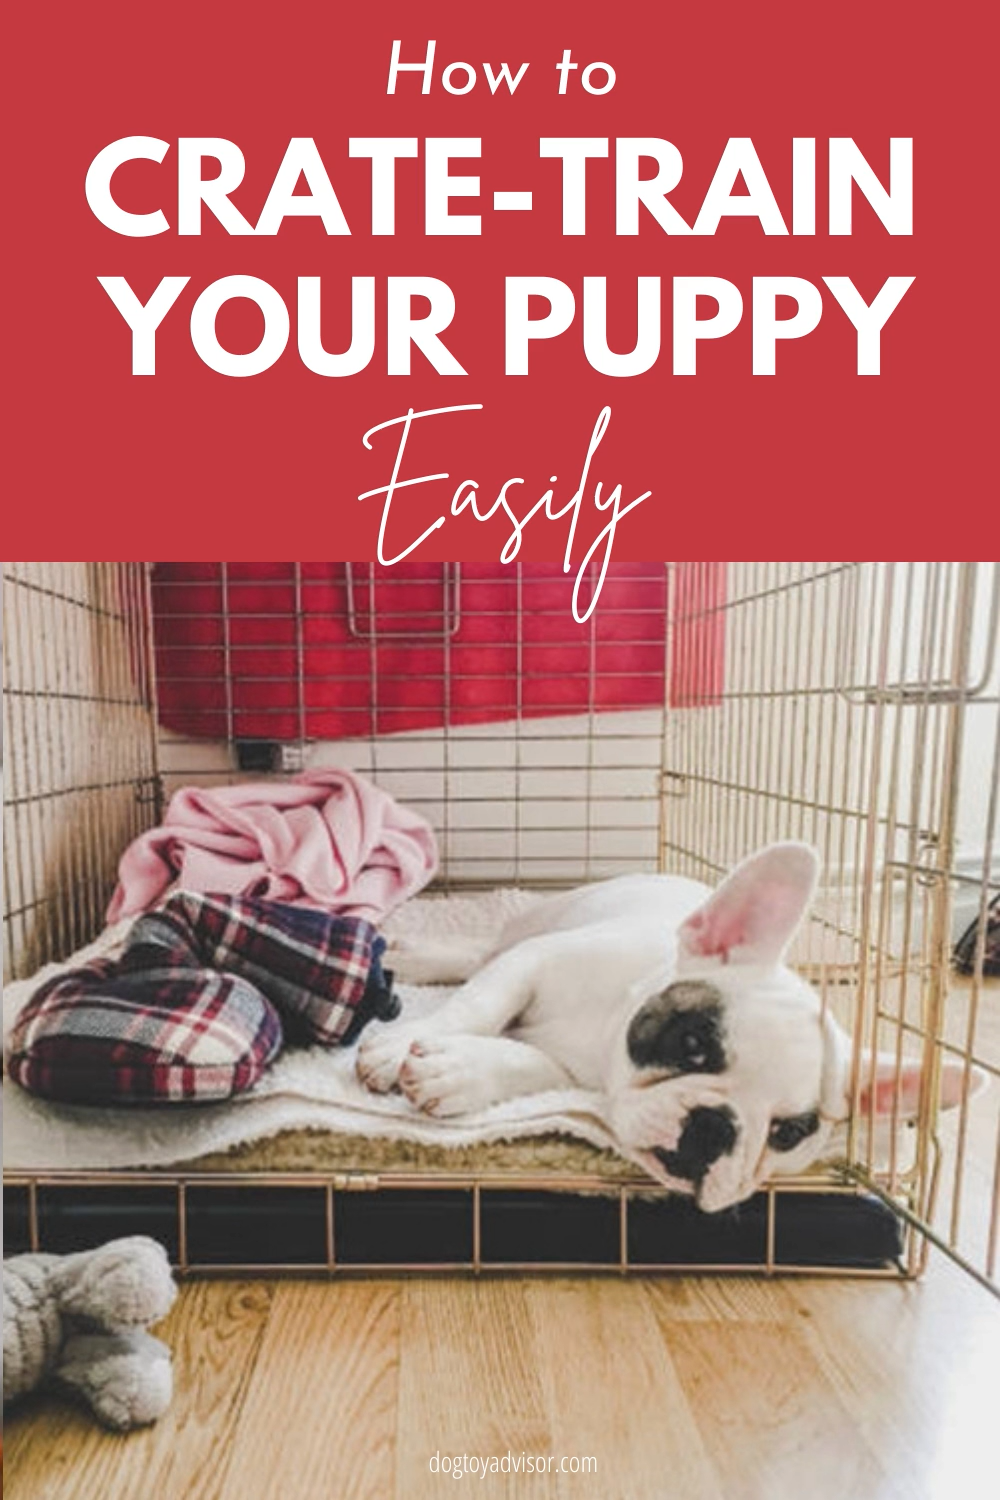 Crate Training Your Dog While Working a Full-Time